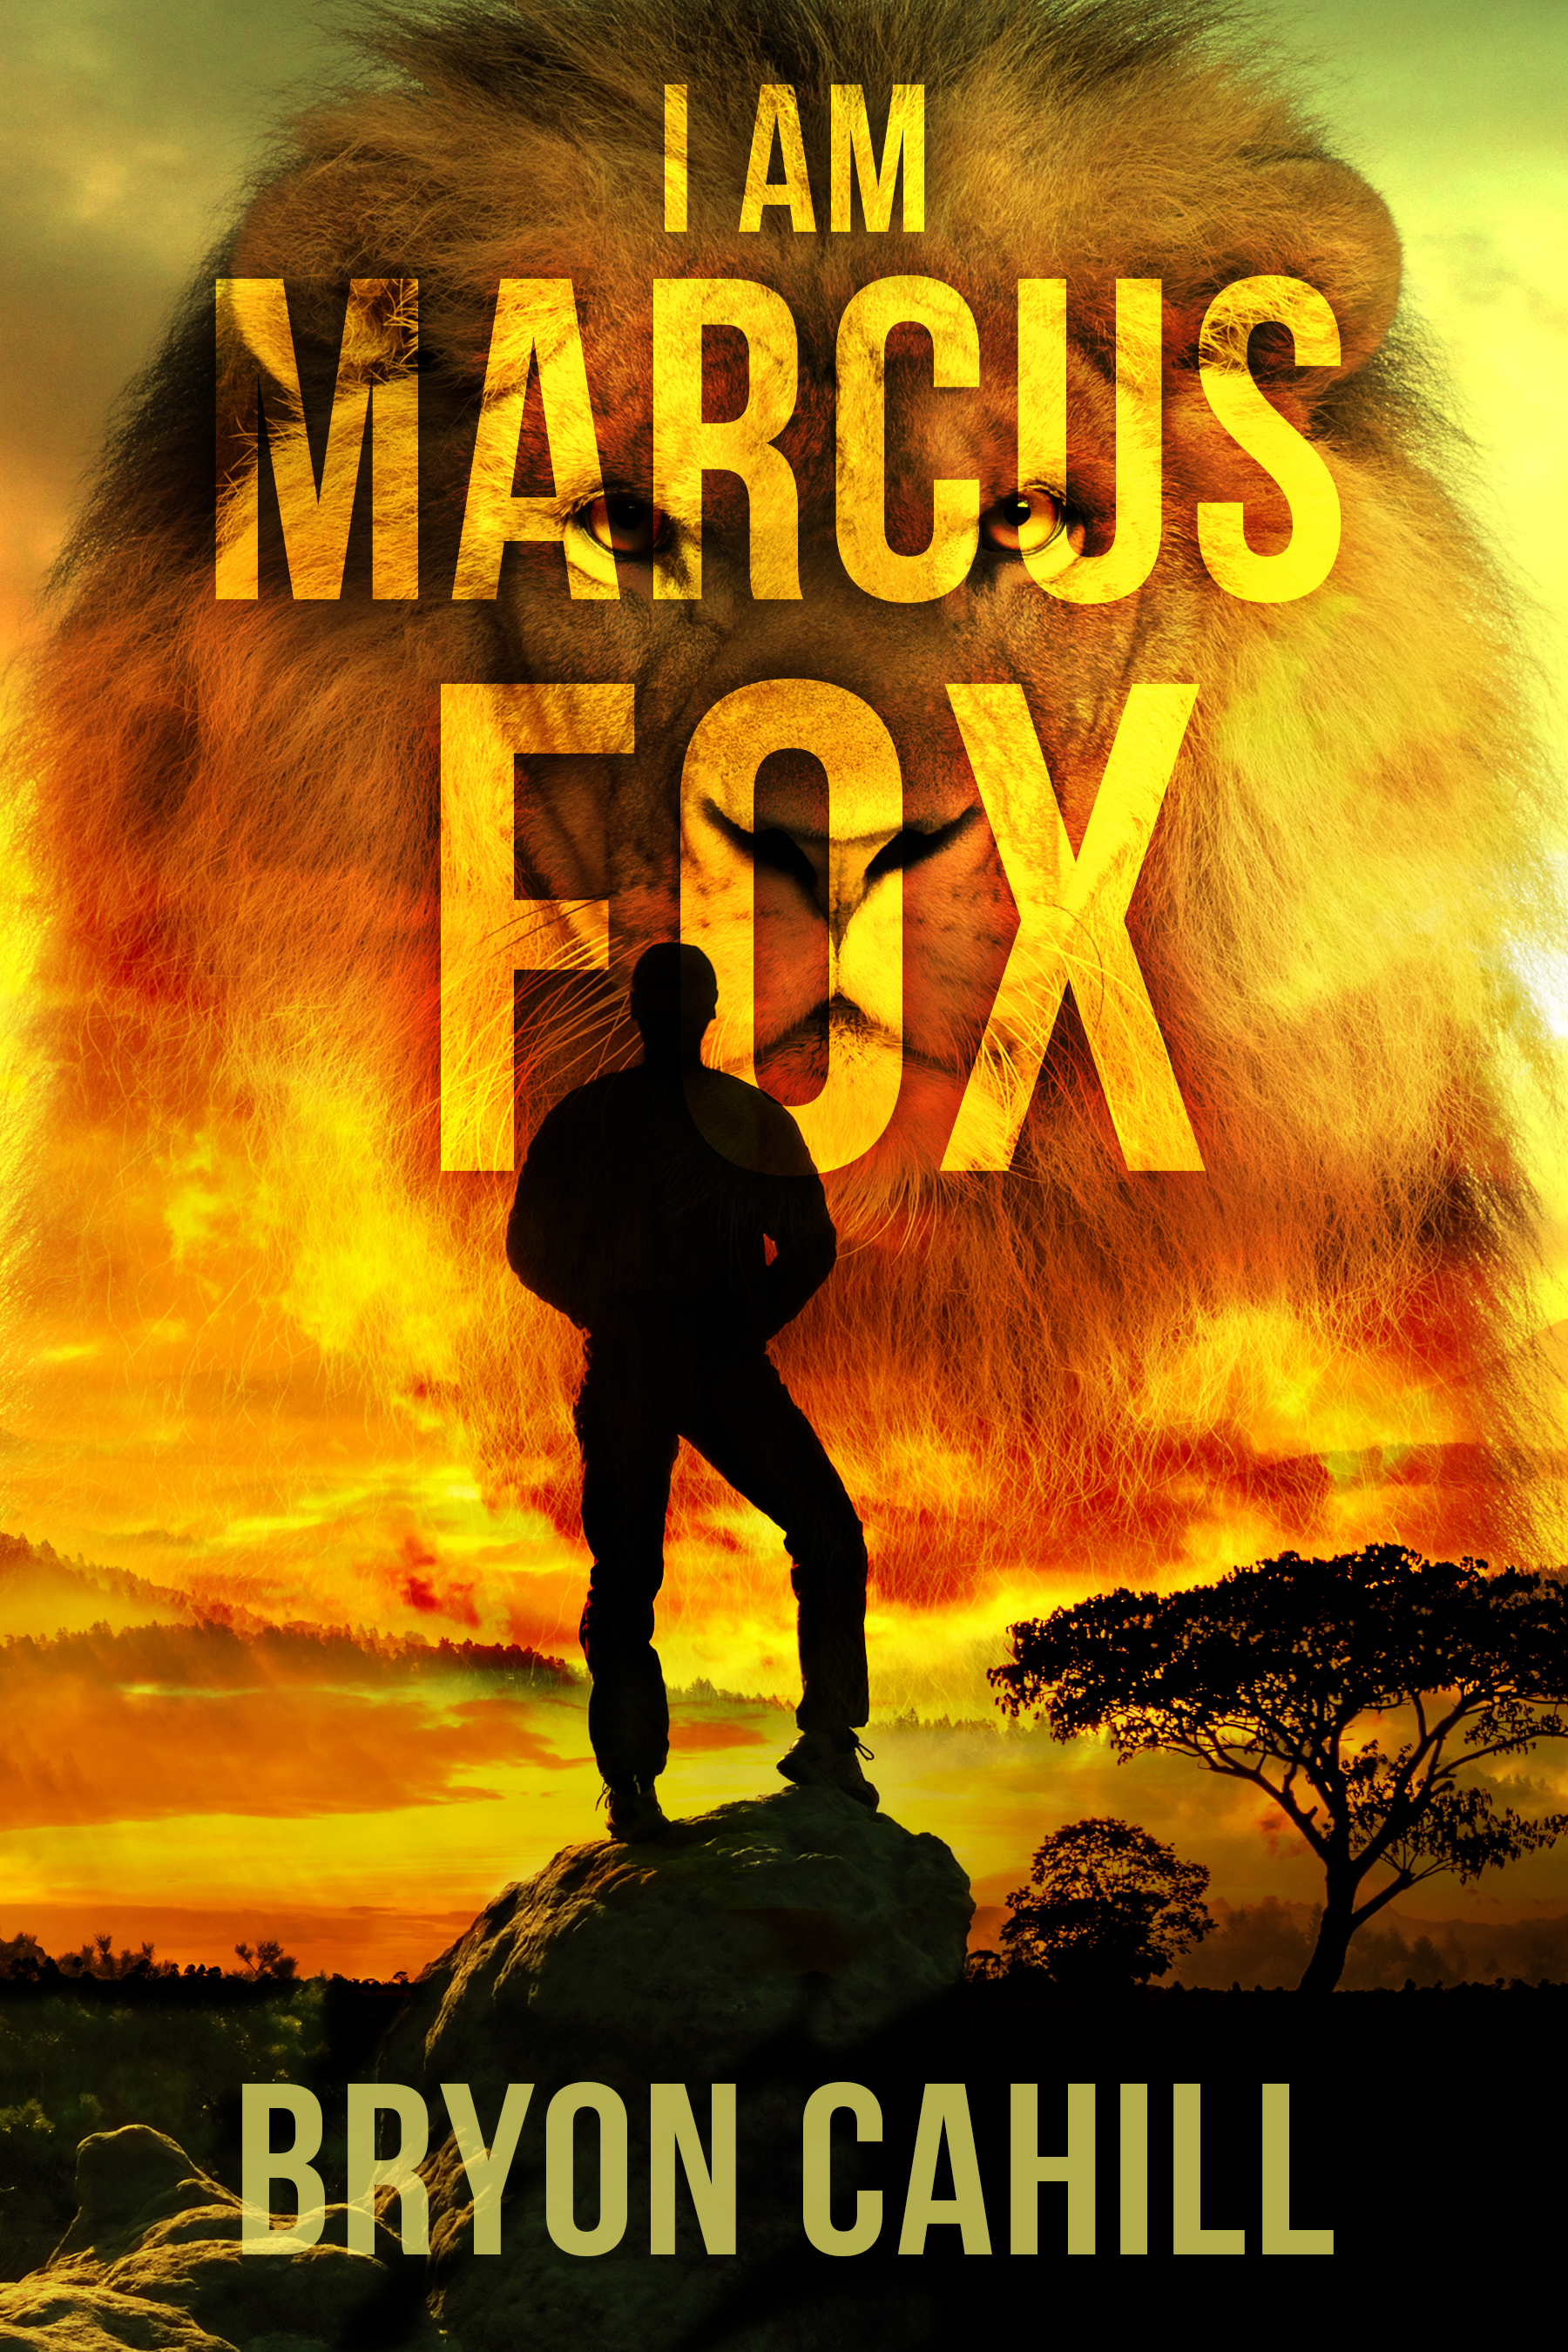 - When I was six, my Momma tossed me out of a low-flying plane. I'd be lying if I said I didn't deserve it.Wrenched from dust-choked, Texas ghost towns and discarded in a lush Zambian forest, Marcus Fox became a welcome member of the fearless tribe that saved him. With the help and guidance of his new people, he learned how to fight for survival, hunt for his supper, and repress the scars of his abandonment. As he grew to premature manhood, familial betrayal came calling once more, leaving him broken and alone, yet again.With the past never behind him, he'll venture down a twisty, bone-scattered road in search of the infernal woman who started him on his tortured path. Perhaps she has some passable answer to his one pressing question:Who is Marcus Fox?Available for human consumption on Amazon.com.